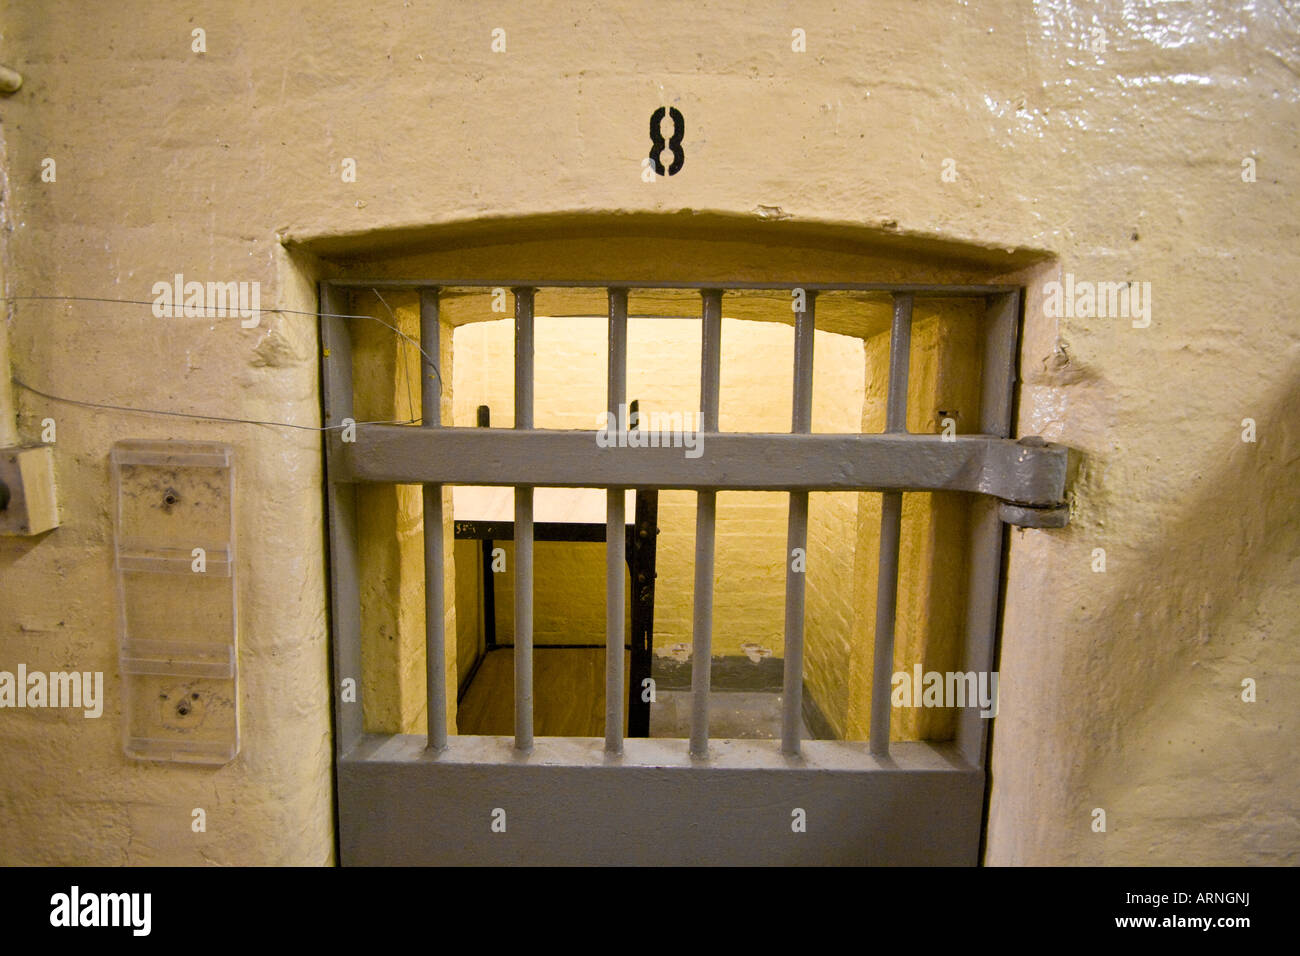 Cells and Cellblock in Victoria Prison Hong Kong - Stock Image